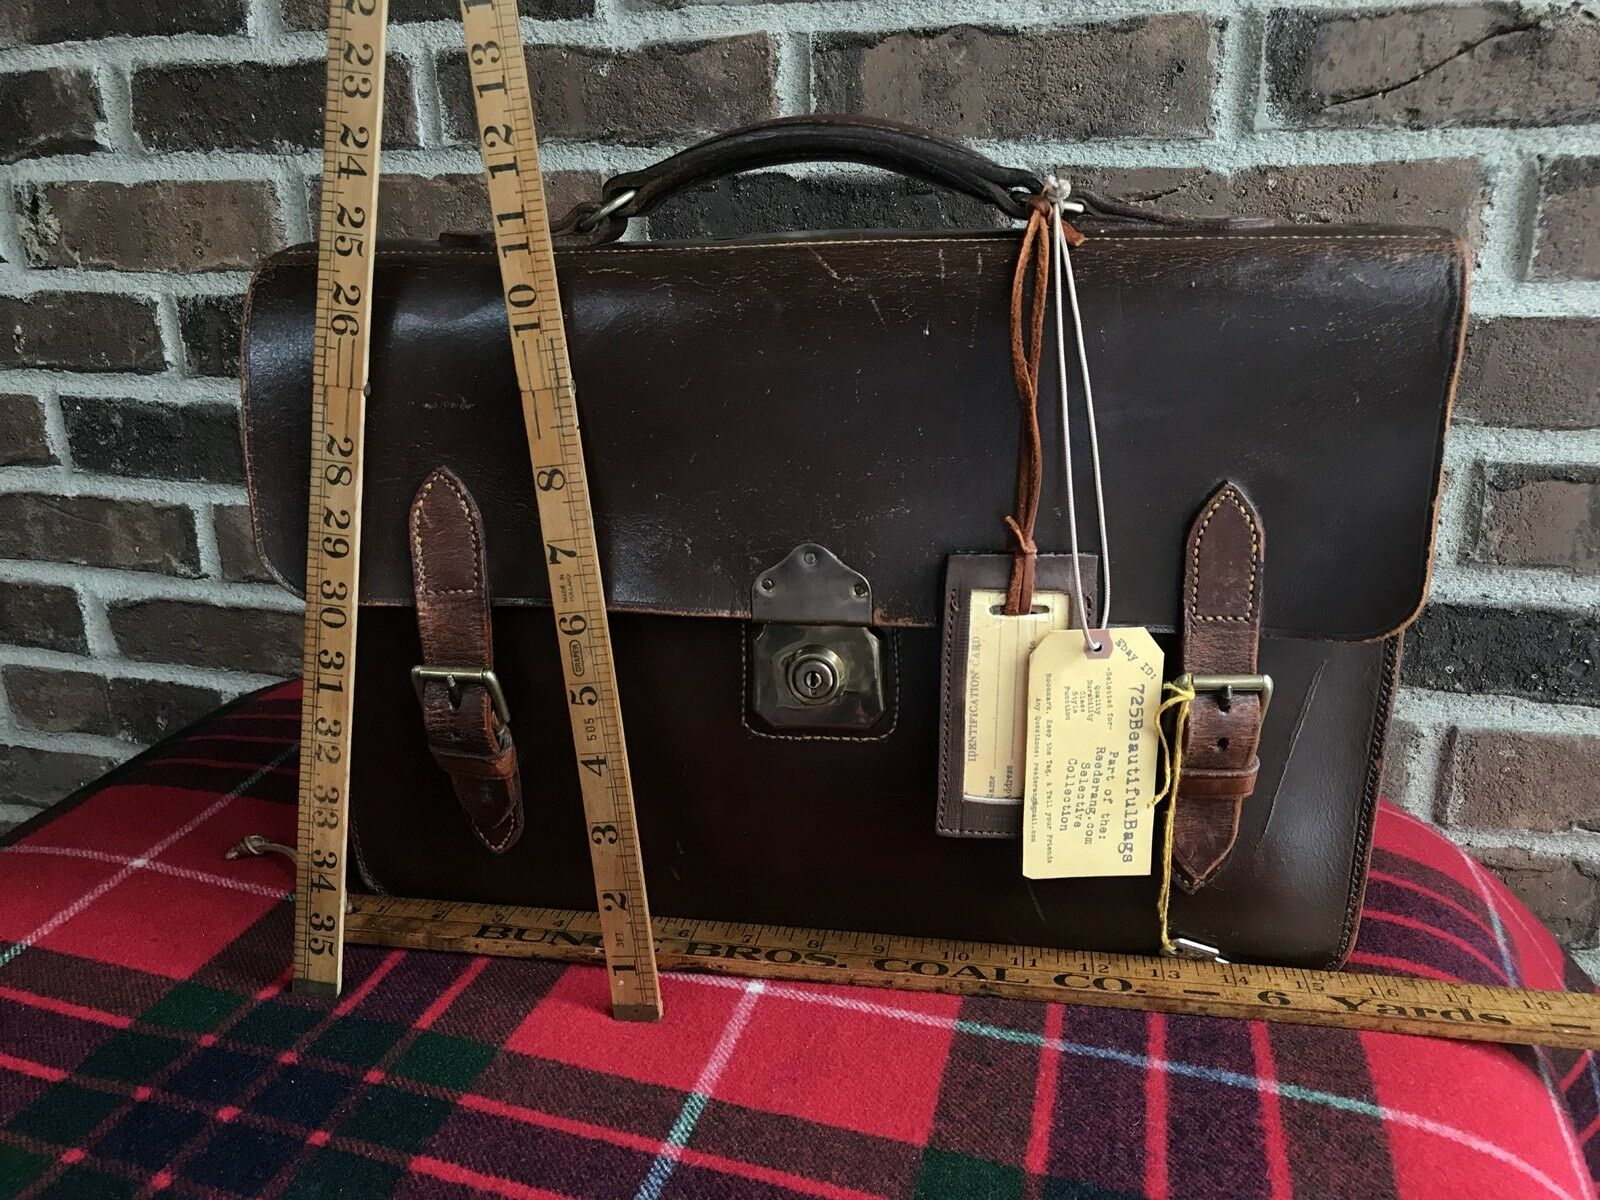 VINTAGE FRANCE 1940's BROWN SADDLE HARNESS BELTING LEATHER BRIEFCASE BAG R$1298